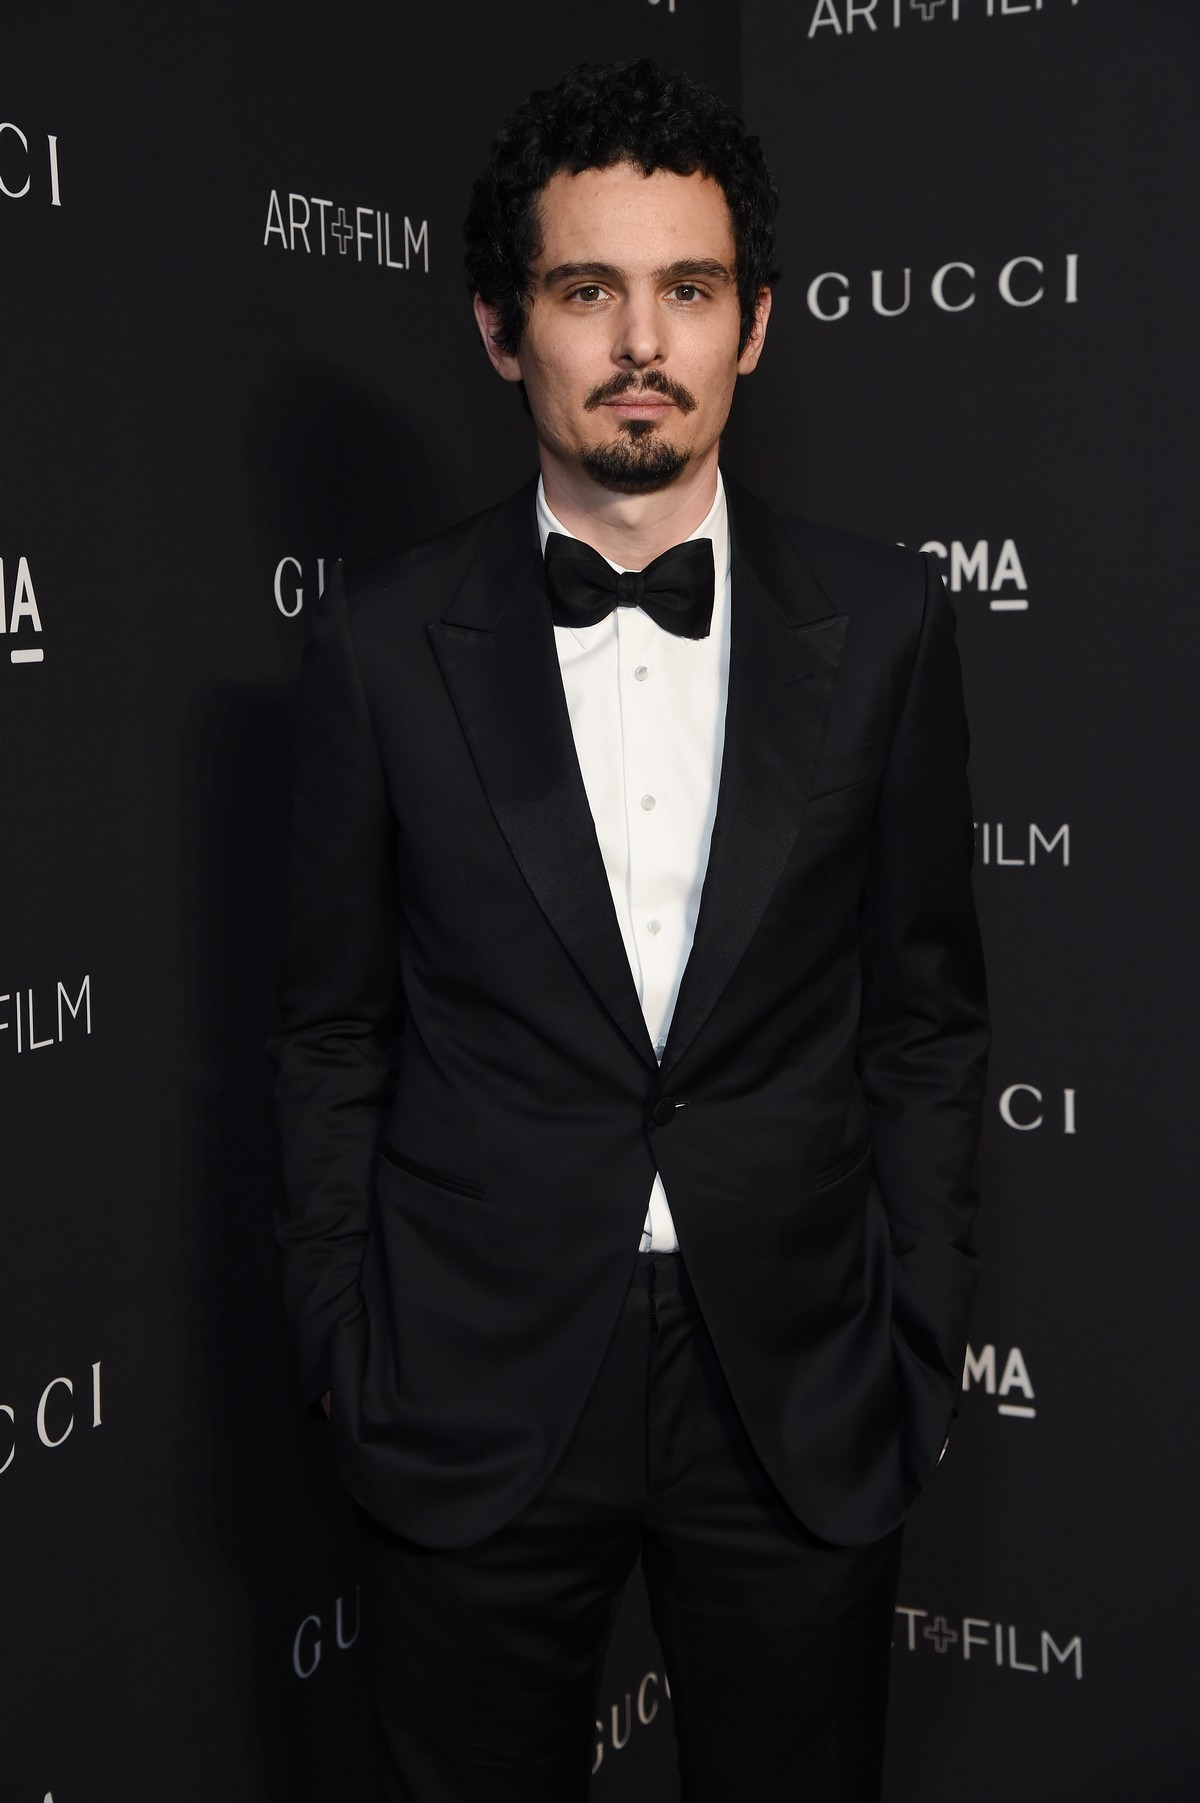 Lacma Art and Film Gala 2018